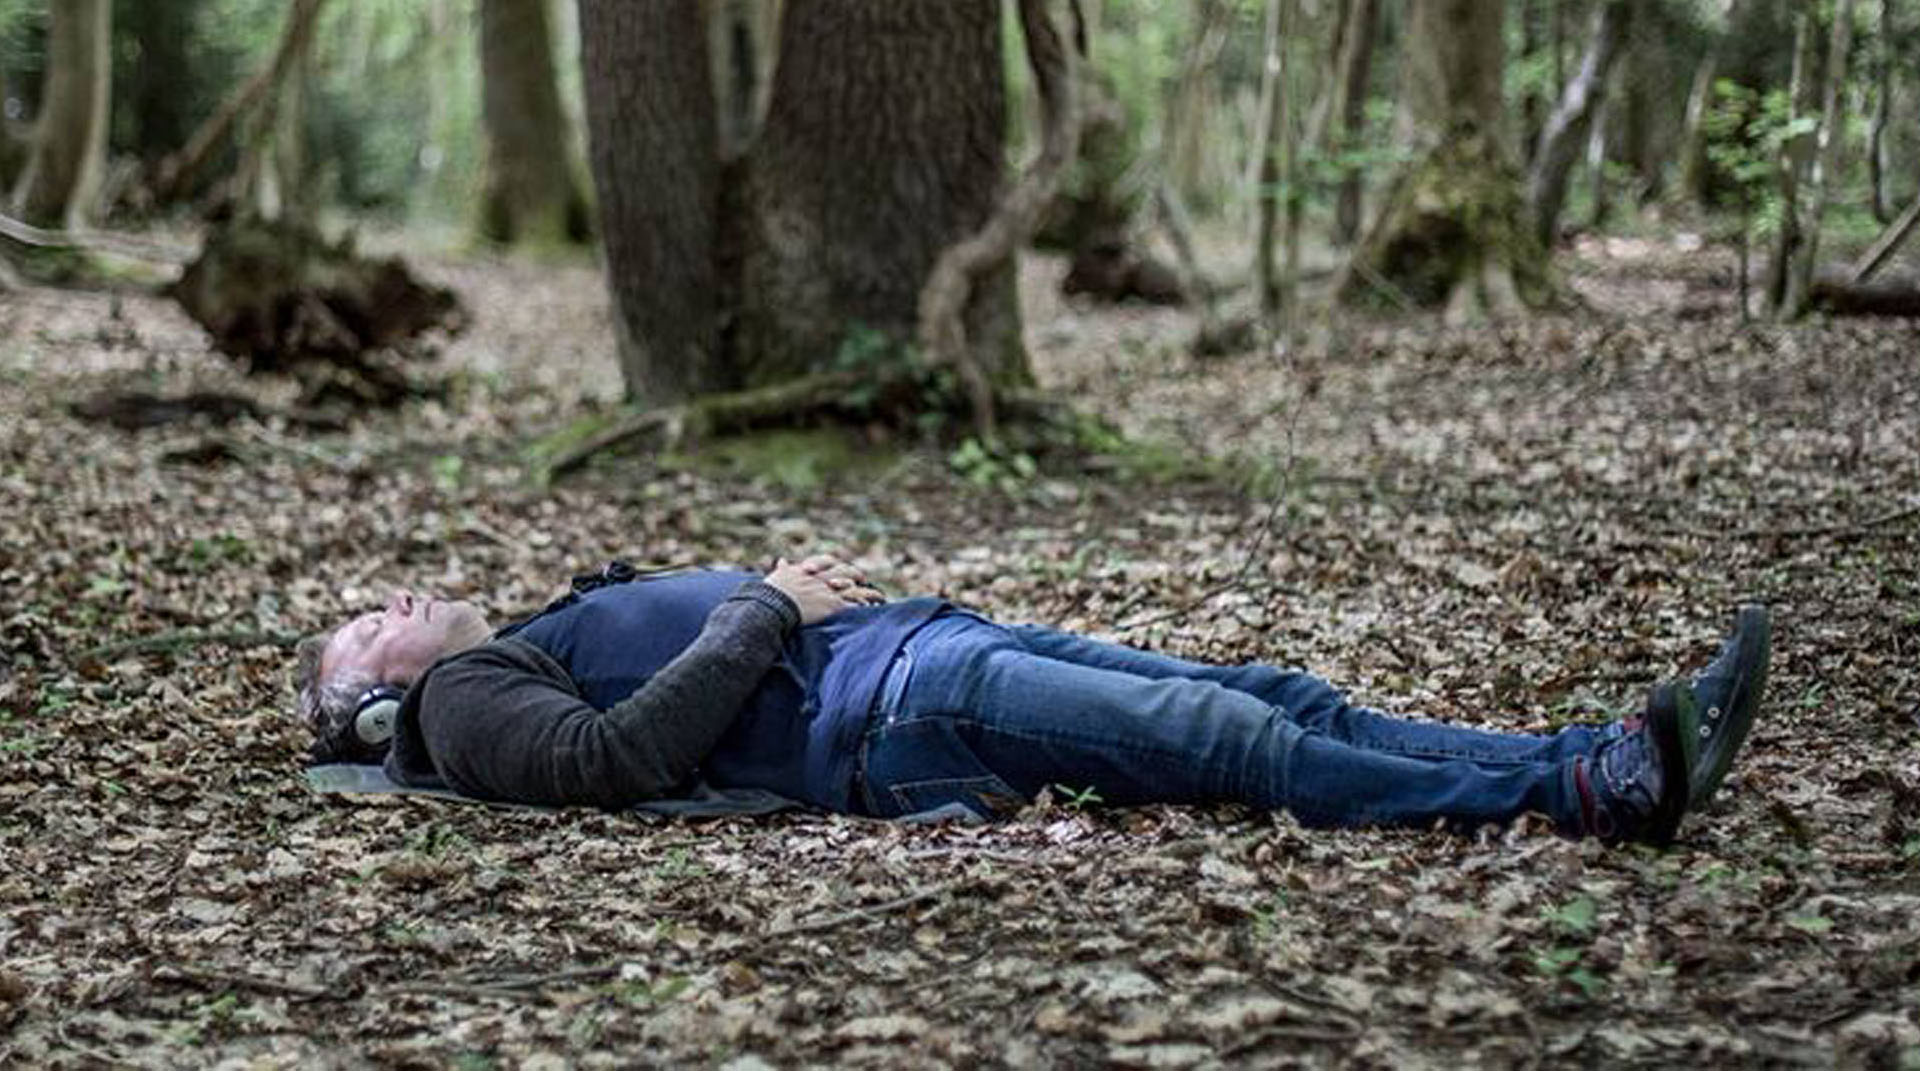 A man lies in a forest while listening to headphones.